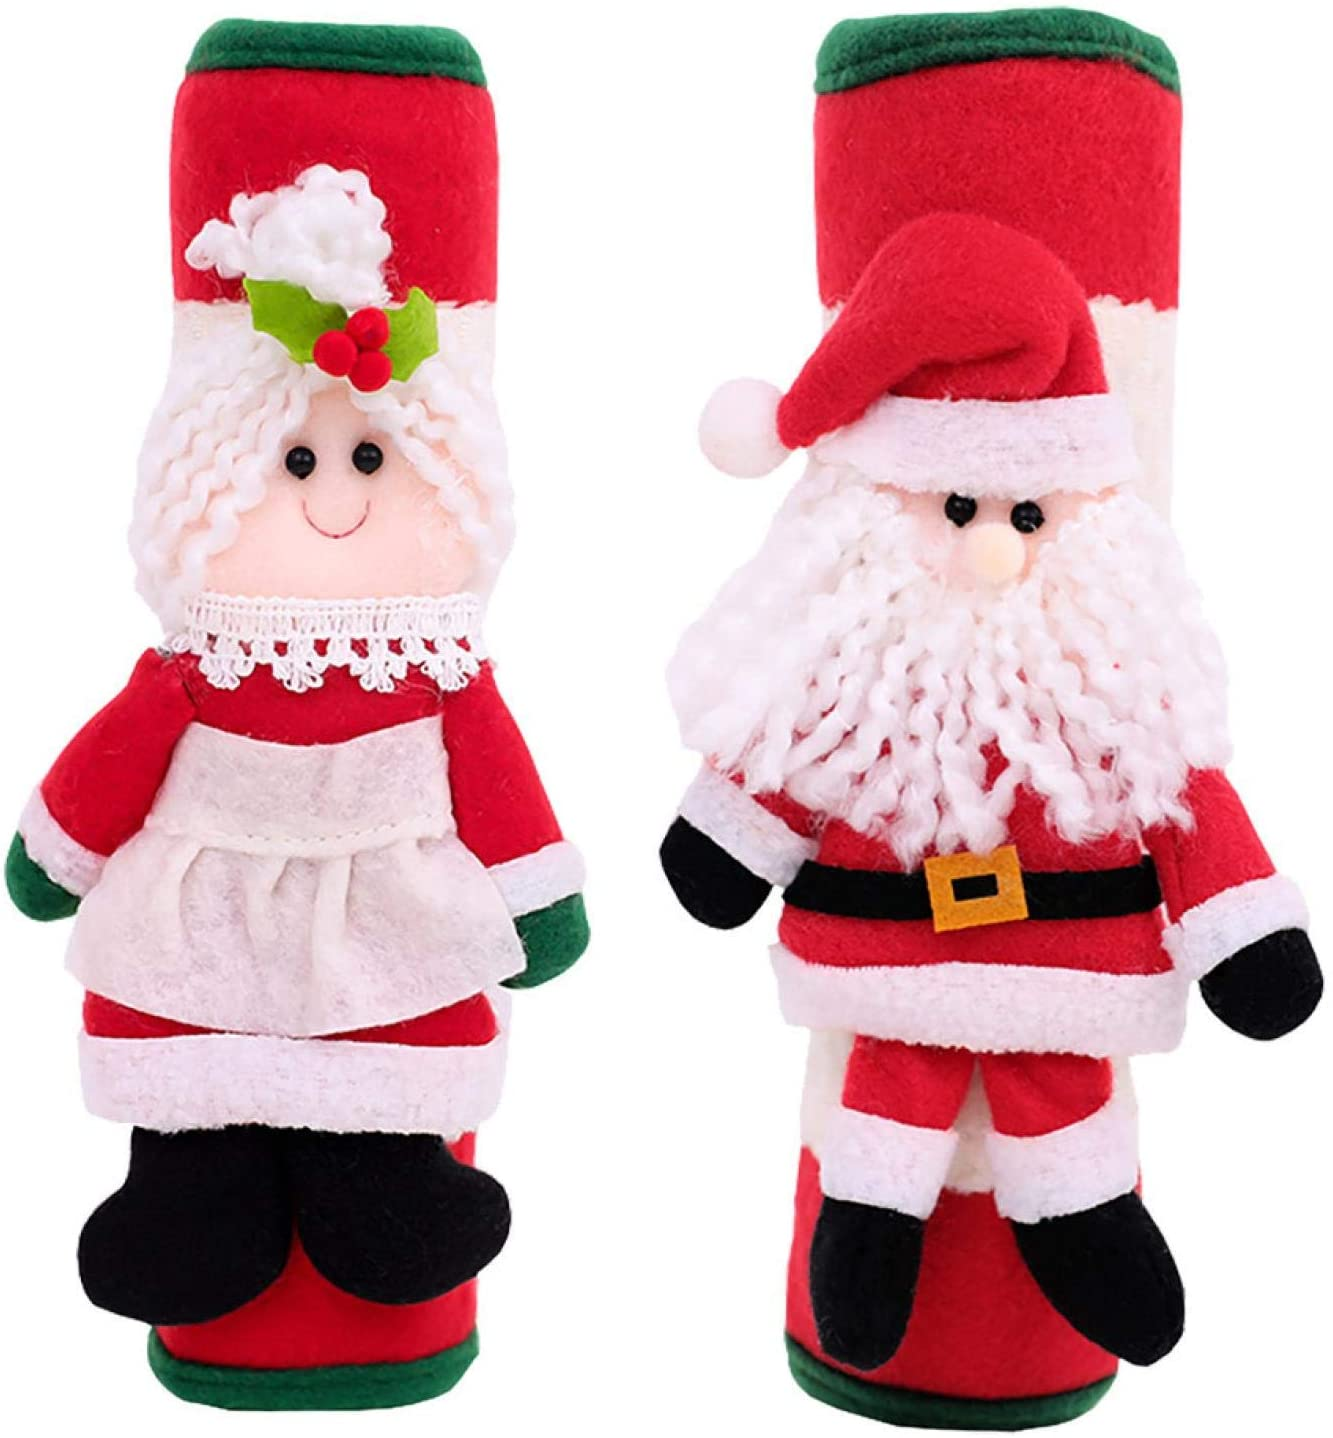 Winter Christmas Refrigerator Door Handle Cover Kitchen Appliances Glove Protector Protect You All Winter and Christmas Comfortably